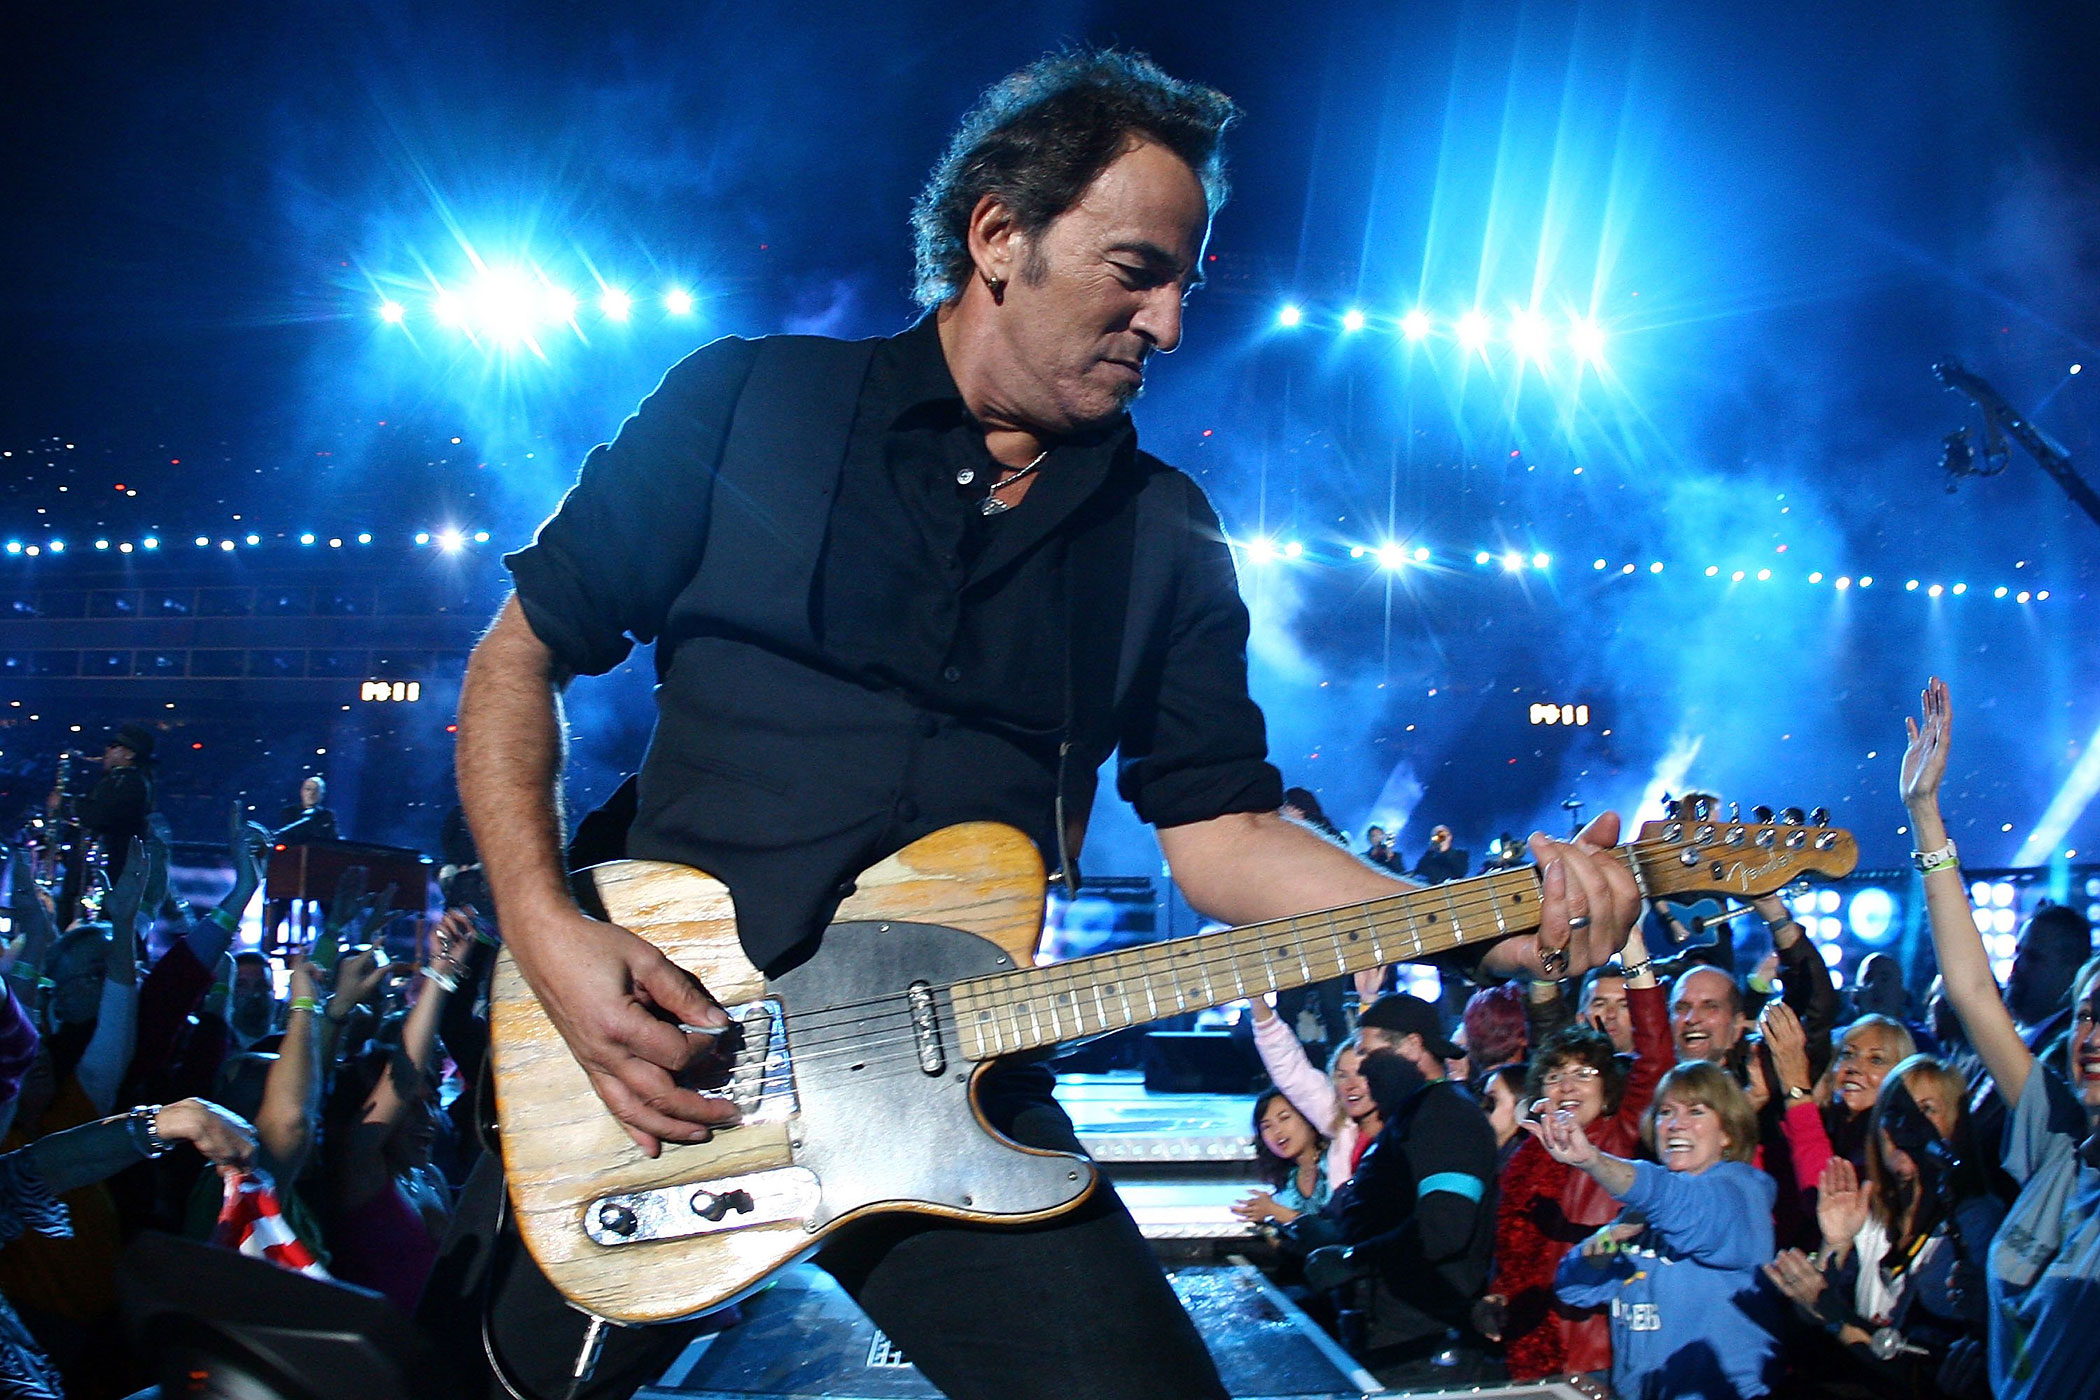 """2009:                                Springsteen performed at the halftime show at Super Bowl XLIII. The band went all out for the show, bringing out the classics from  Born to Run  to  Glory Days  and even the group's creation myth tale,  Tenth Avenue Freeze-Out."""""""